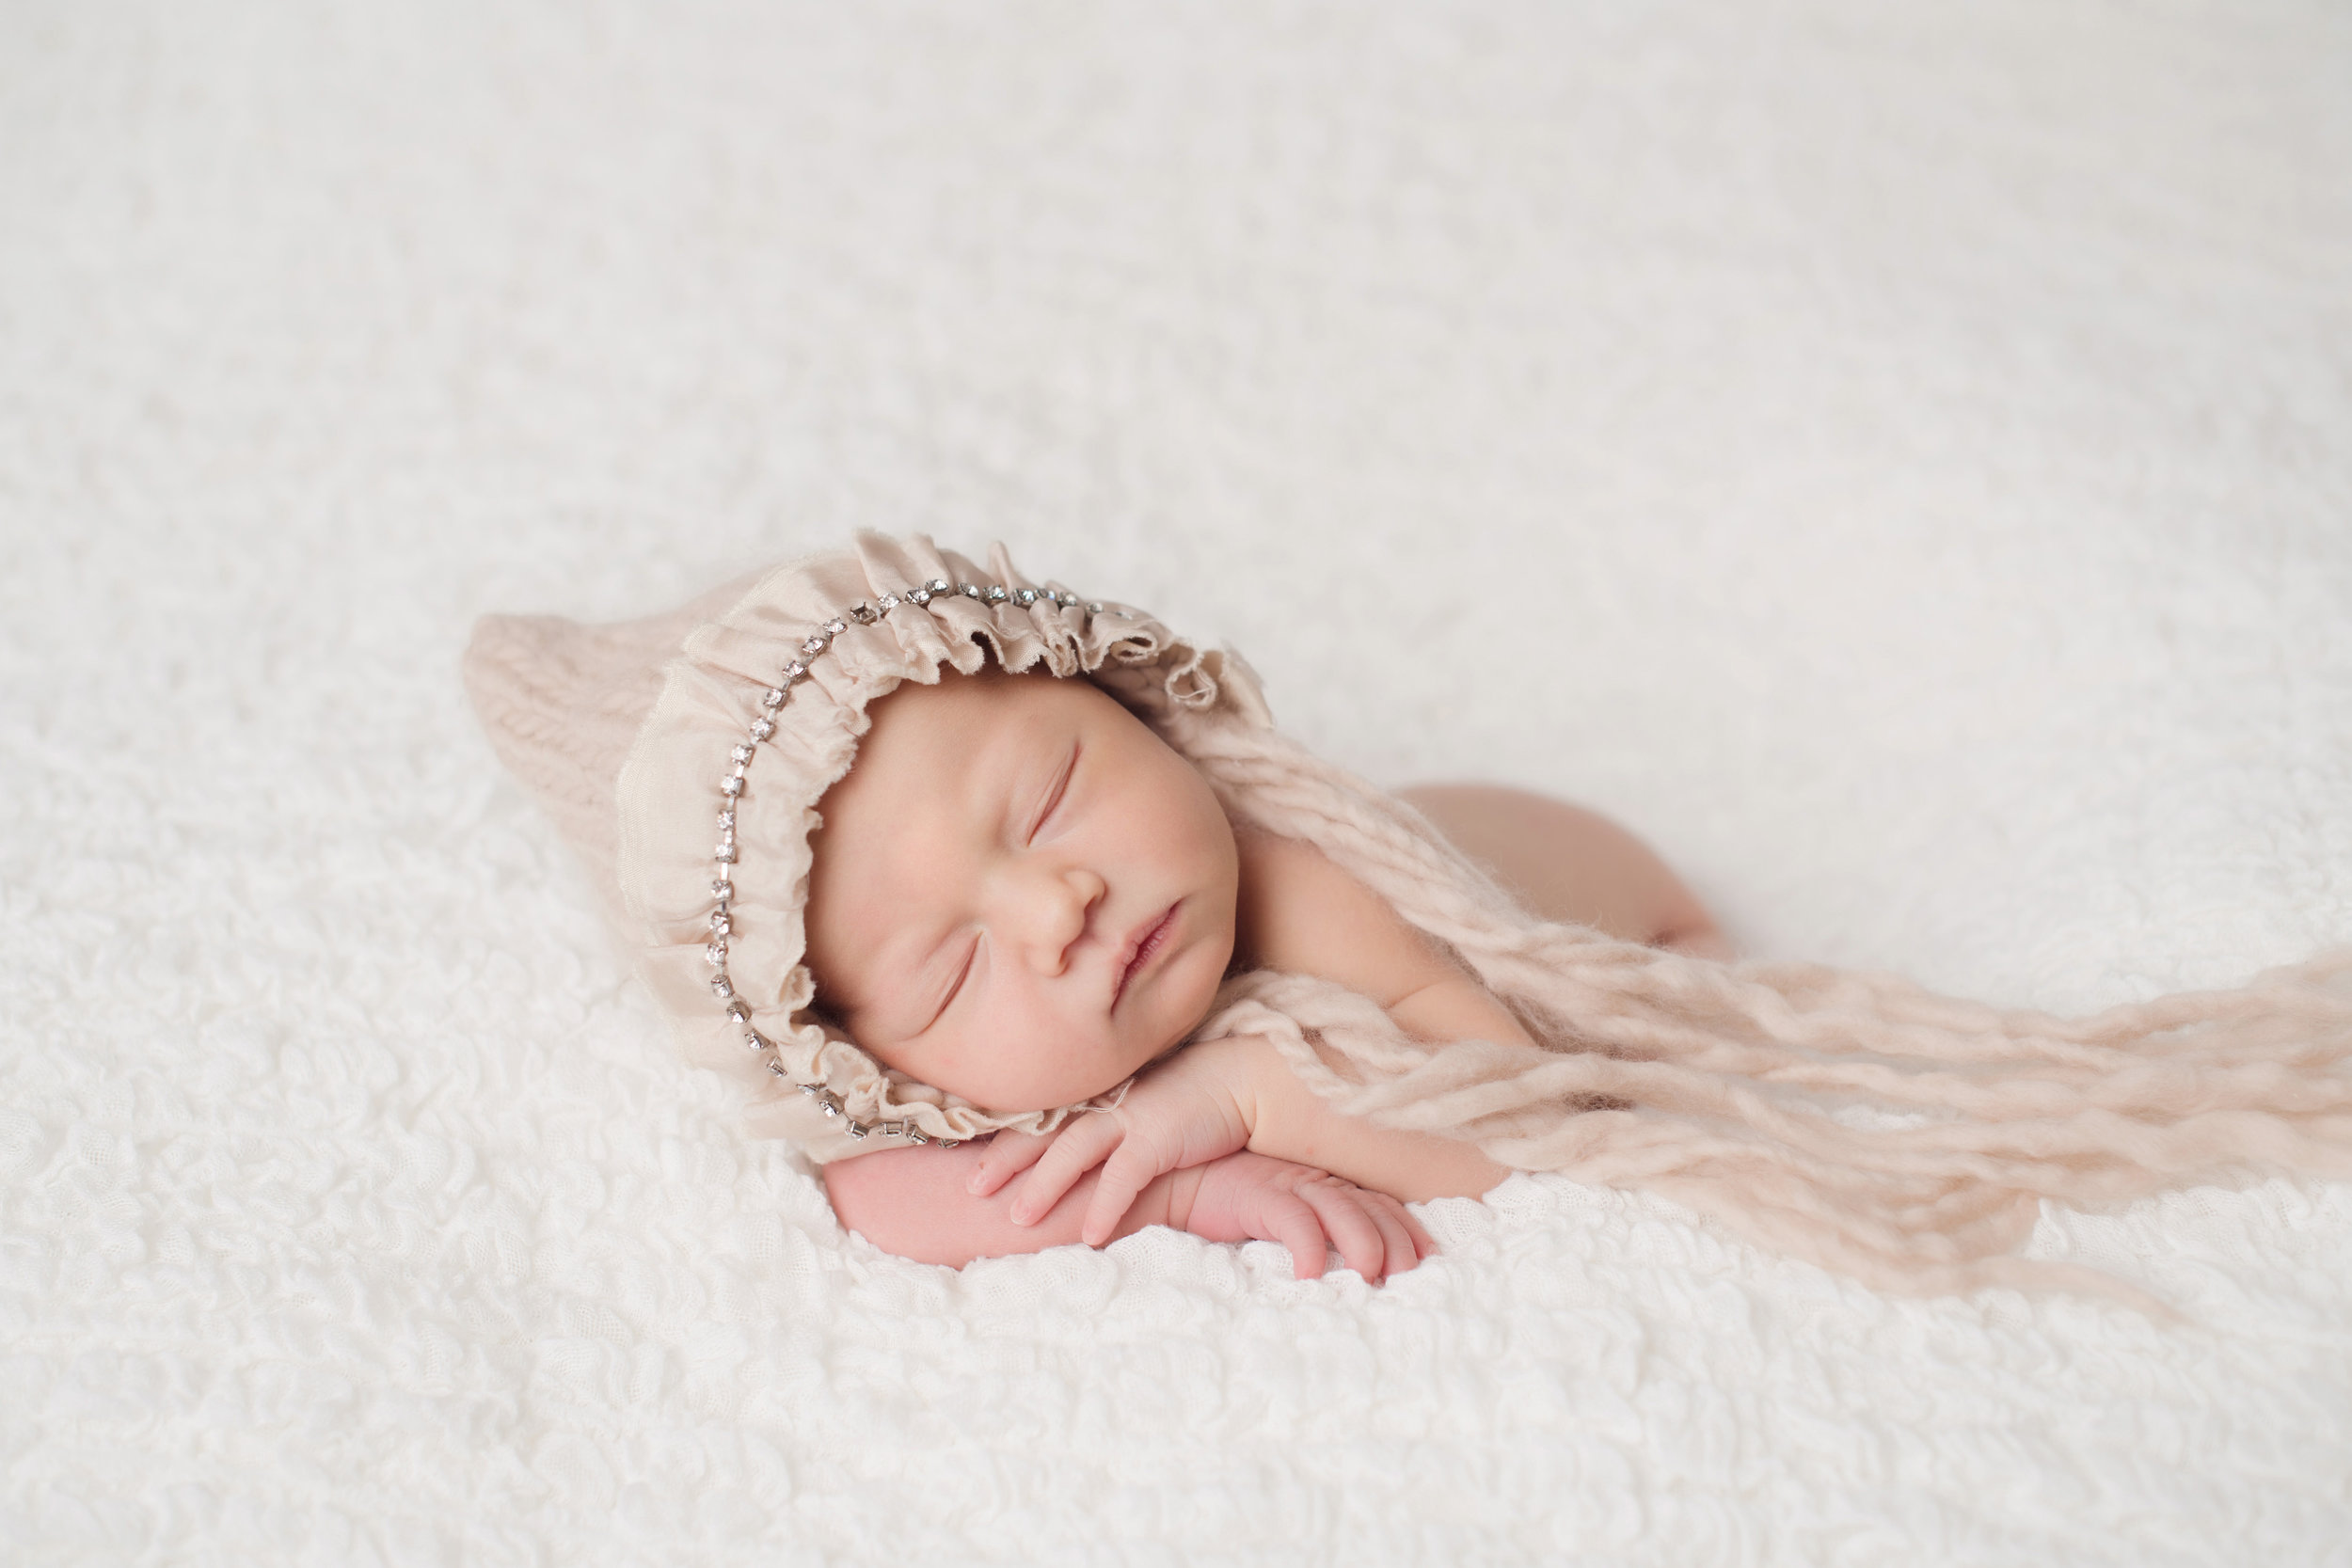 Baby-Photographer-Newborn-Photography-Bozeman-Billings-Montana-Tina-Stinson-Photography-2327.jpg